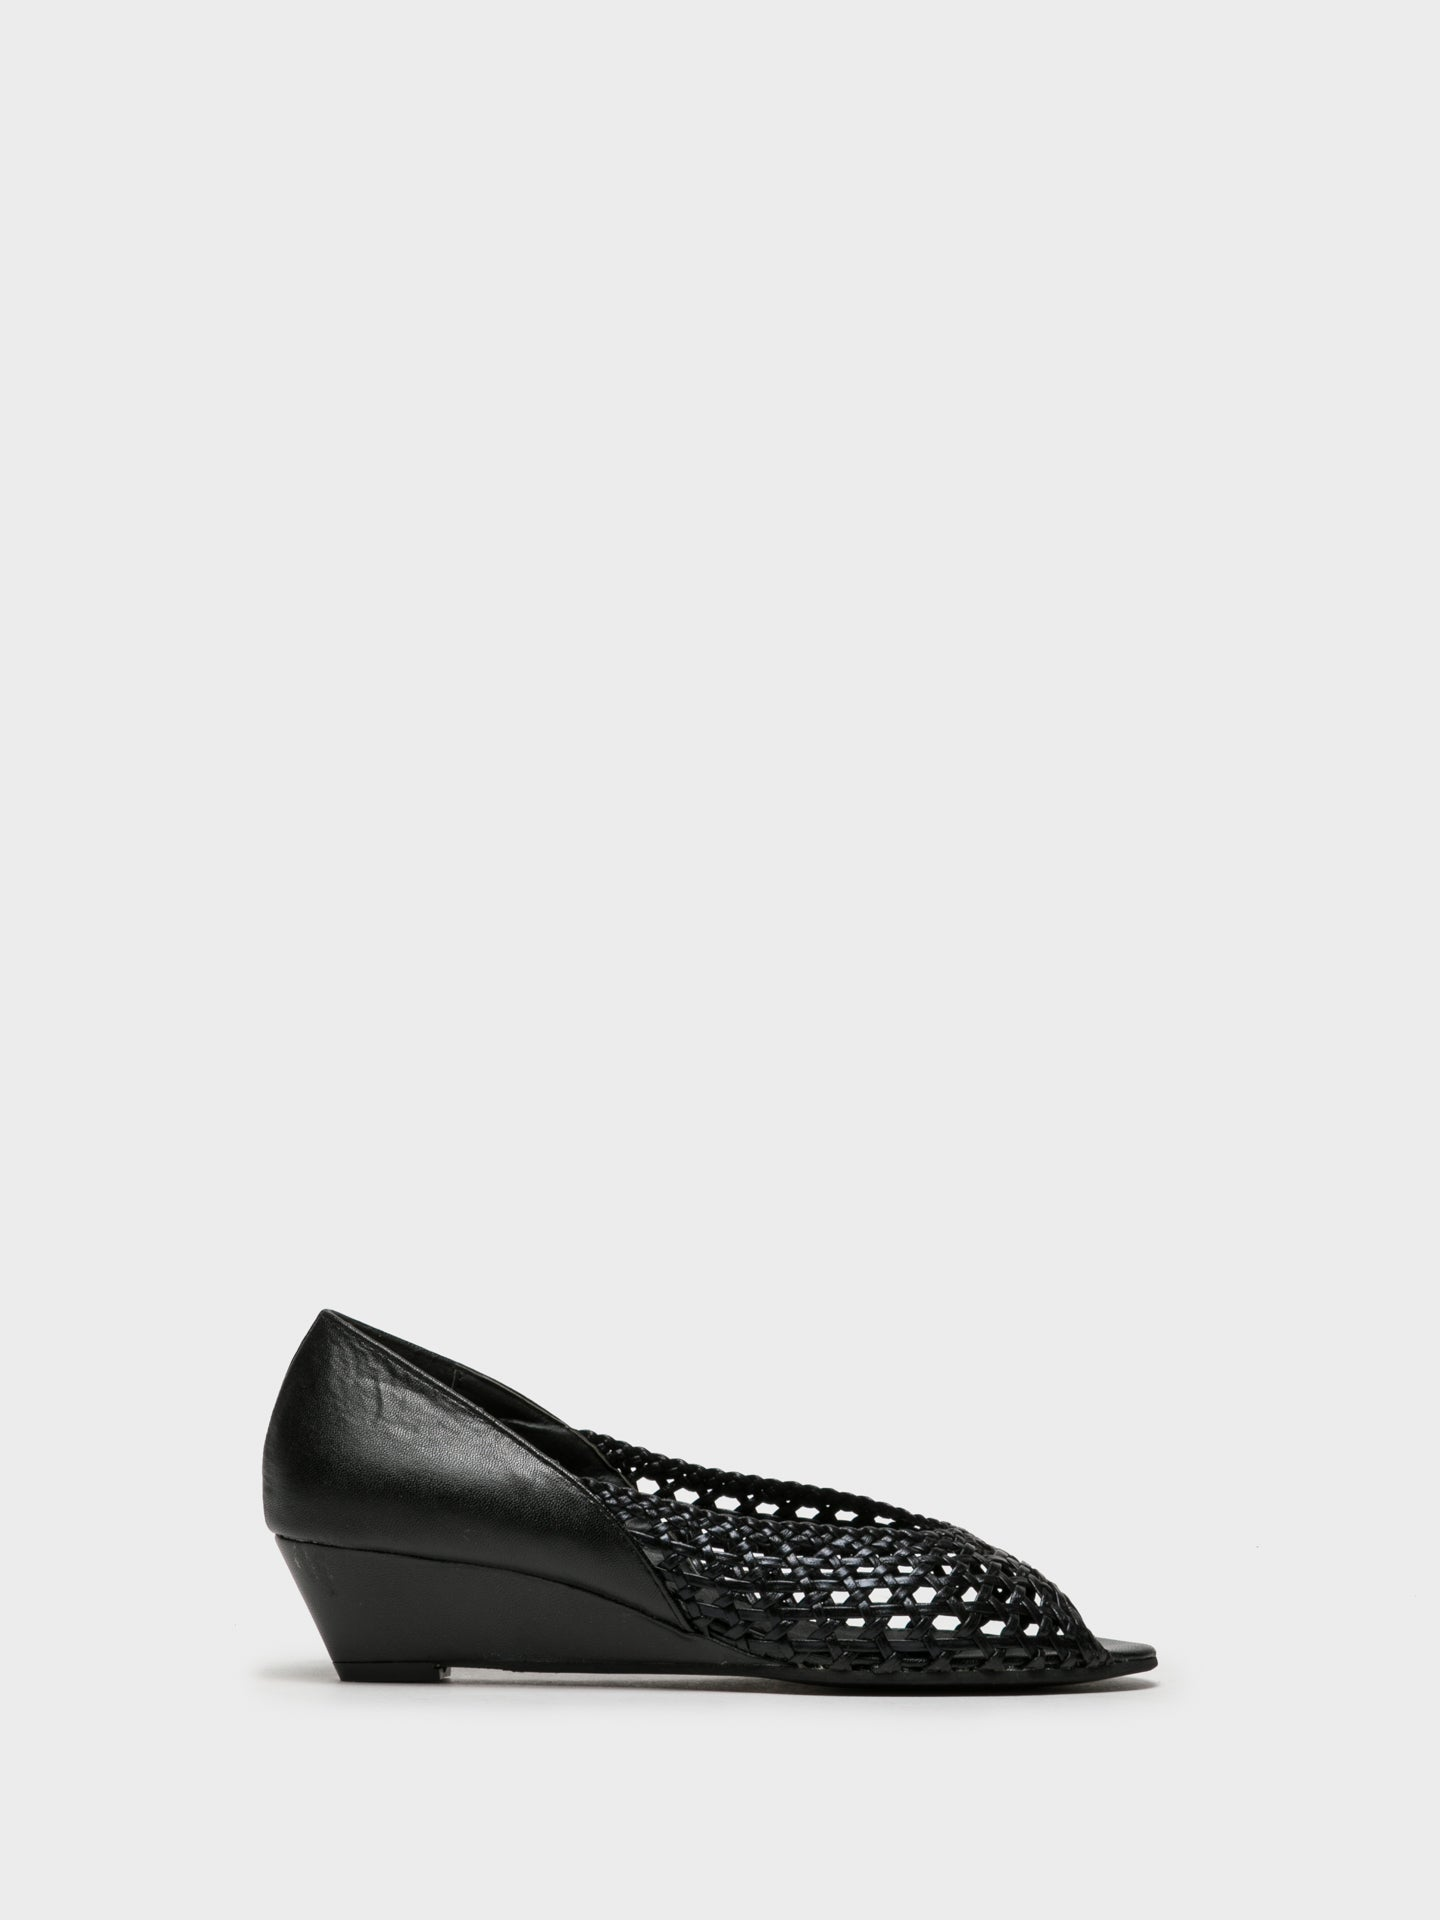 Foreva Black Wedge Shoes